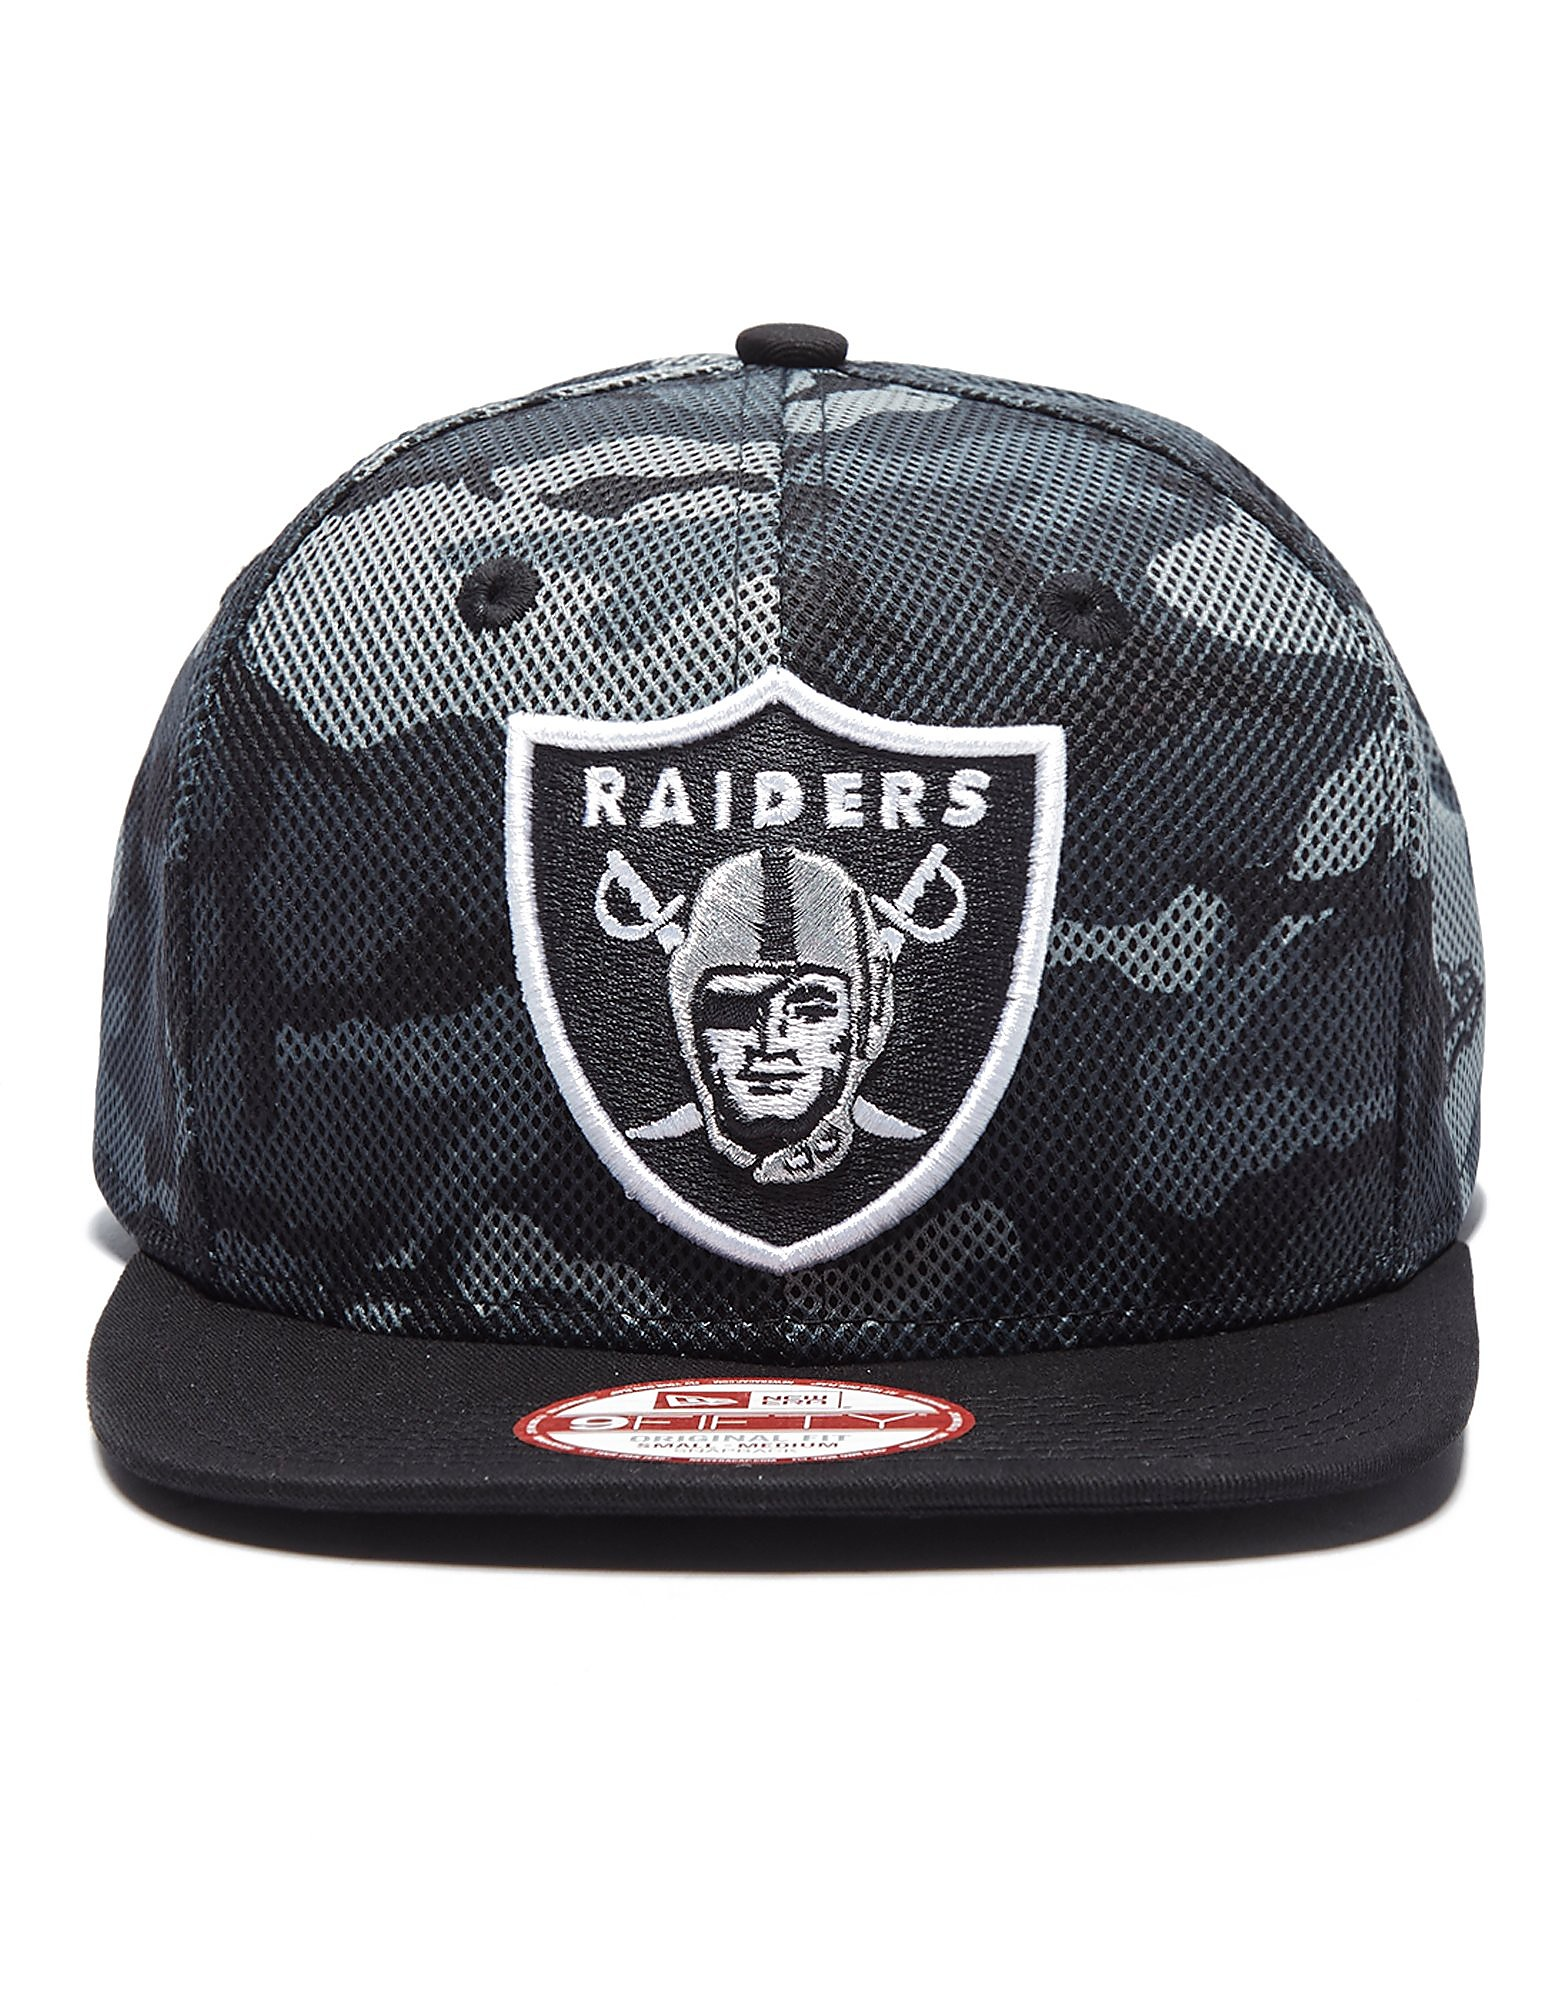 New Era NFL Oakland Raiders 9FIFTY Mesh Camo Cap